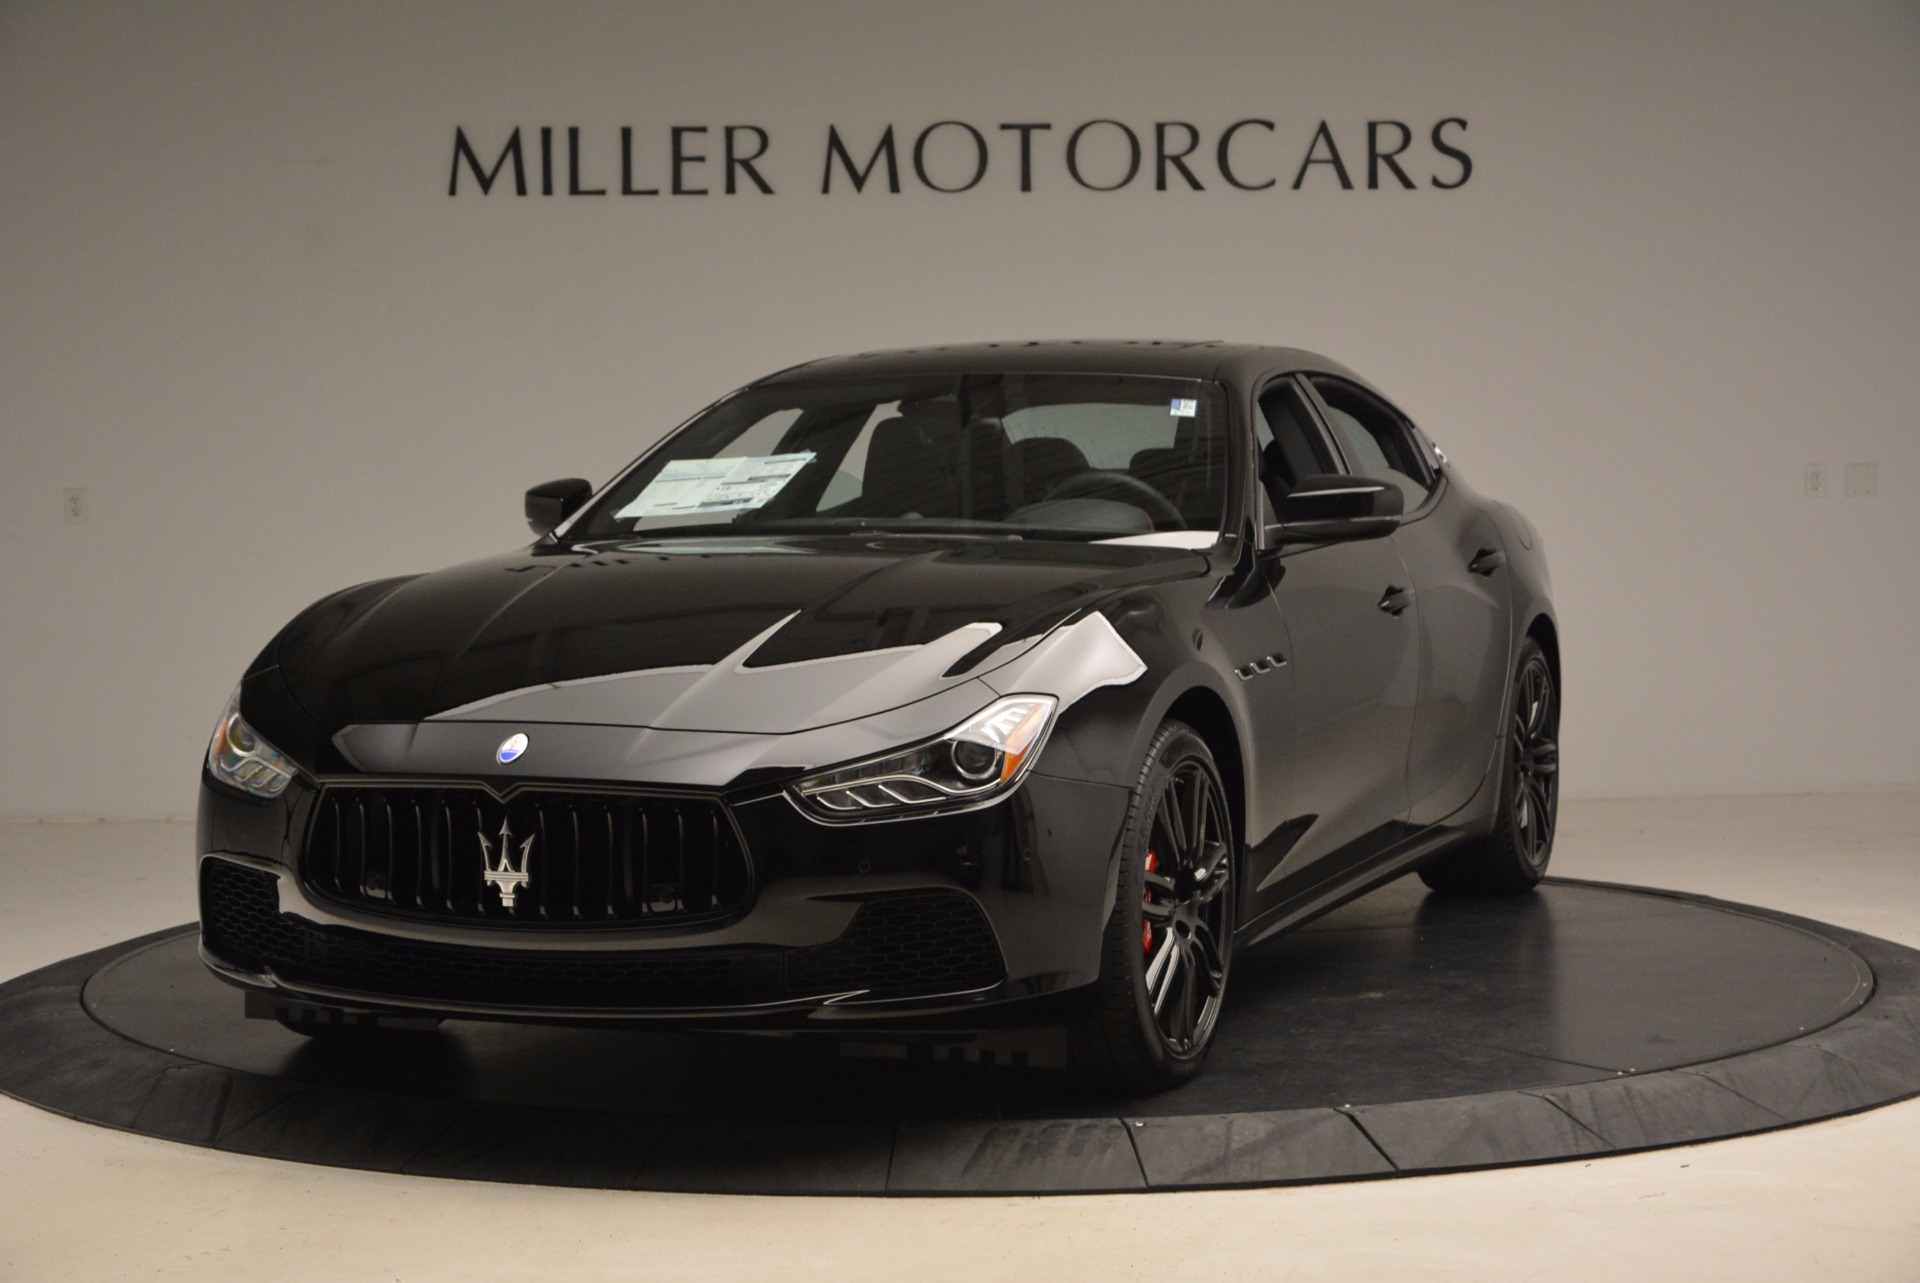 New 2017 Maserati Ghibli Nerissimo Edition S Q4 for sale Sold at McLaren Greenwich in Greenwich CT 06830 1